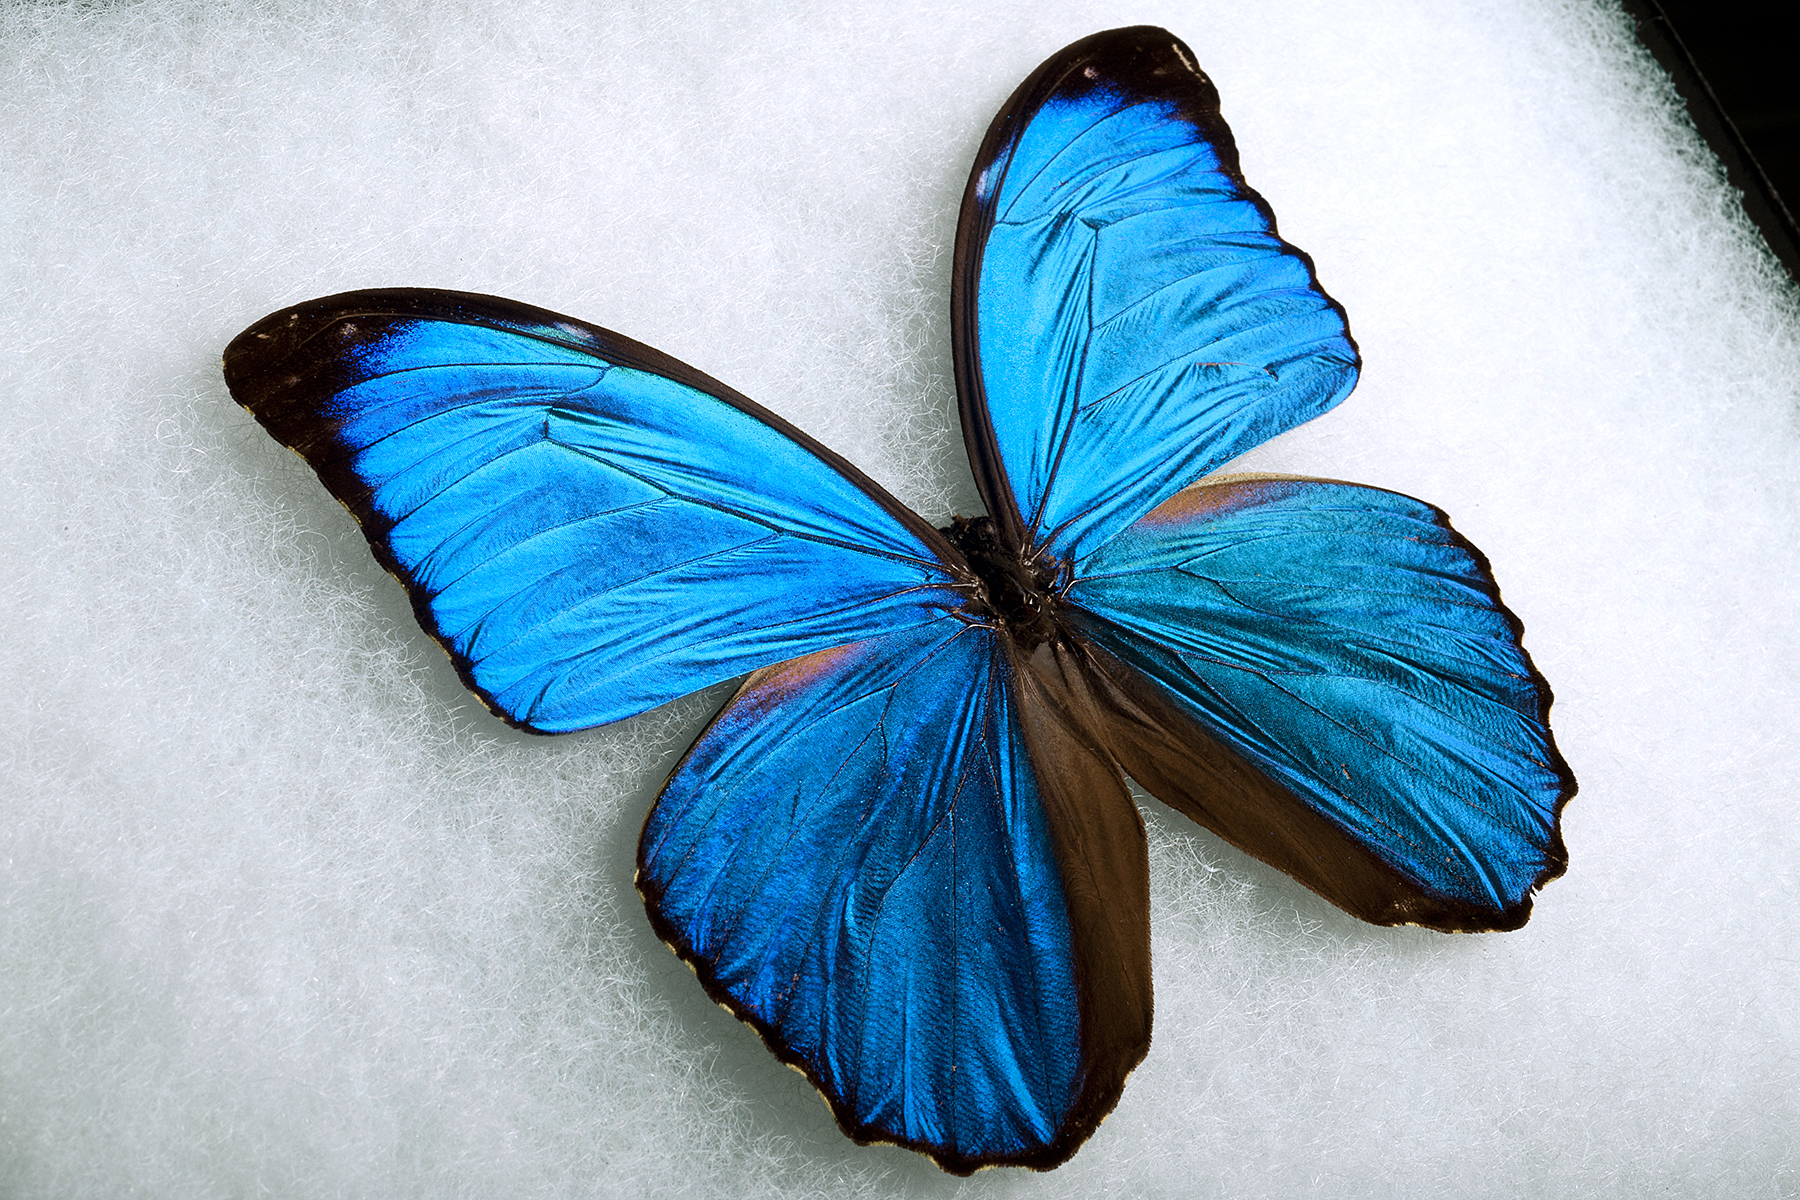 Butterfly vs shark: nature's clues to anti-dust materials